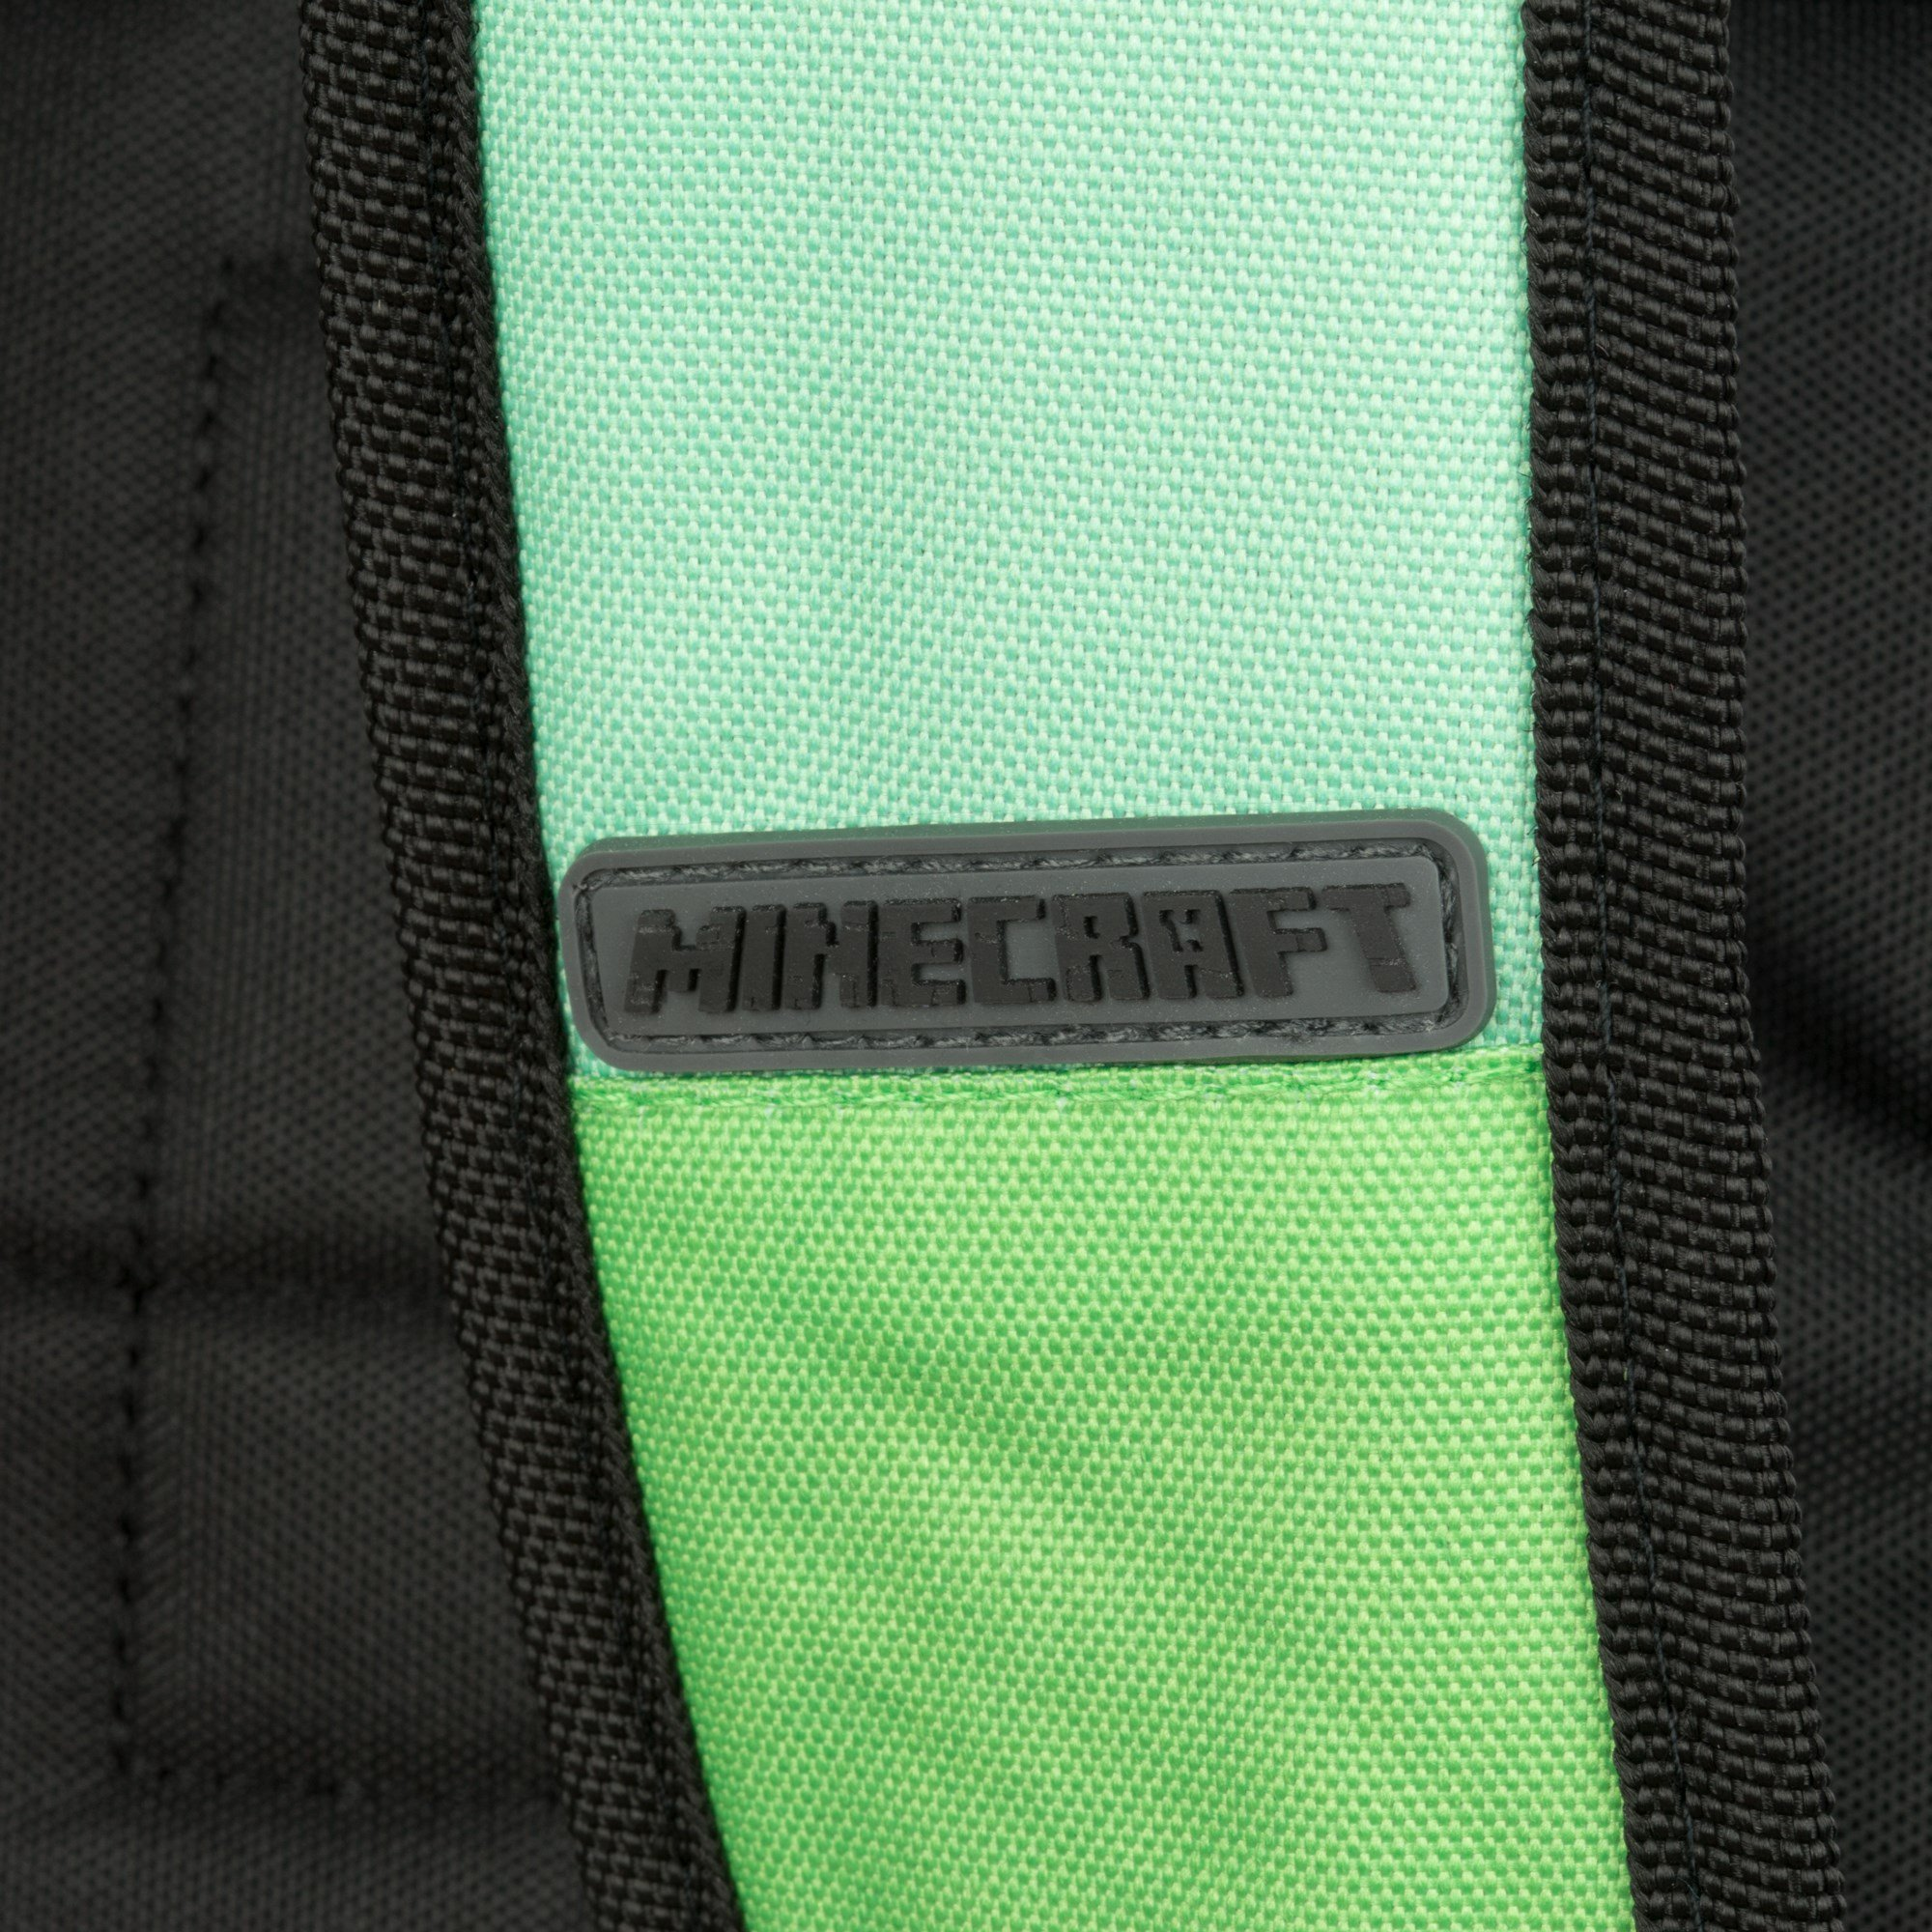 JINX Minecraft Creeper Kids Backpack (Green, 18'') for School, Camping, Travel, Outdoors & Fun by JINX (Image #5)